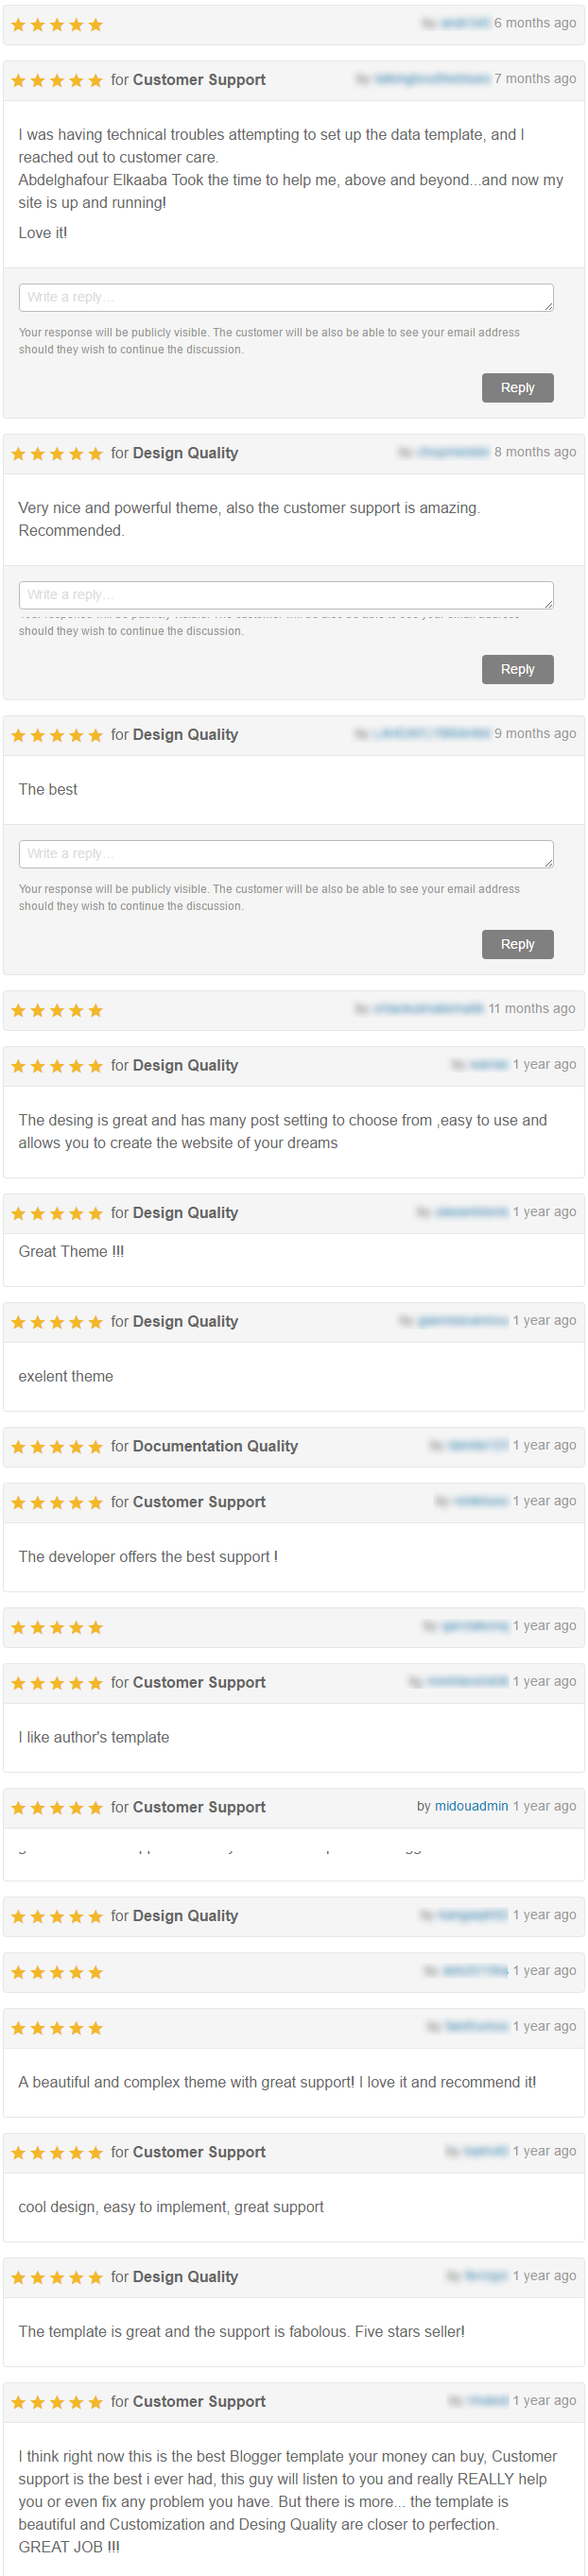 Buyers Reviews